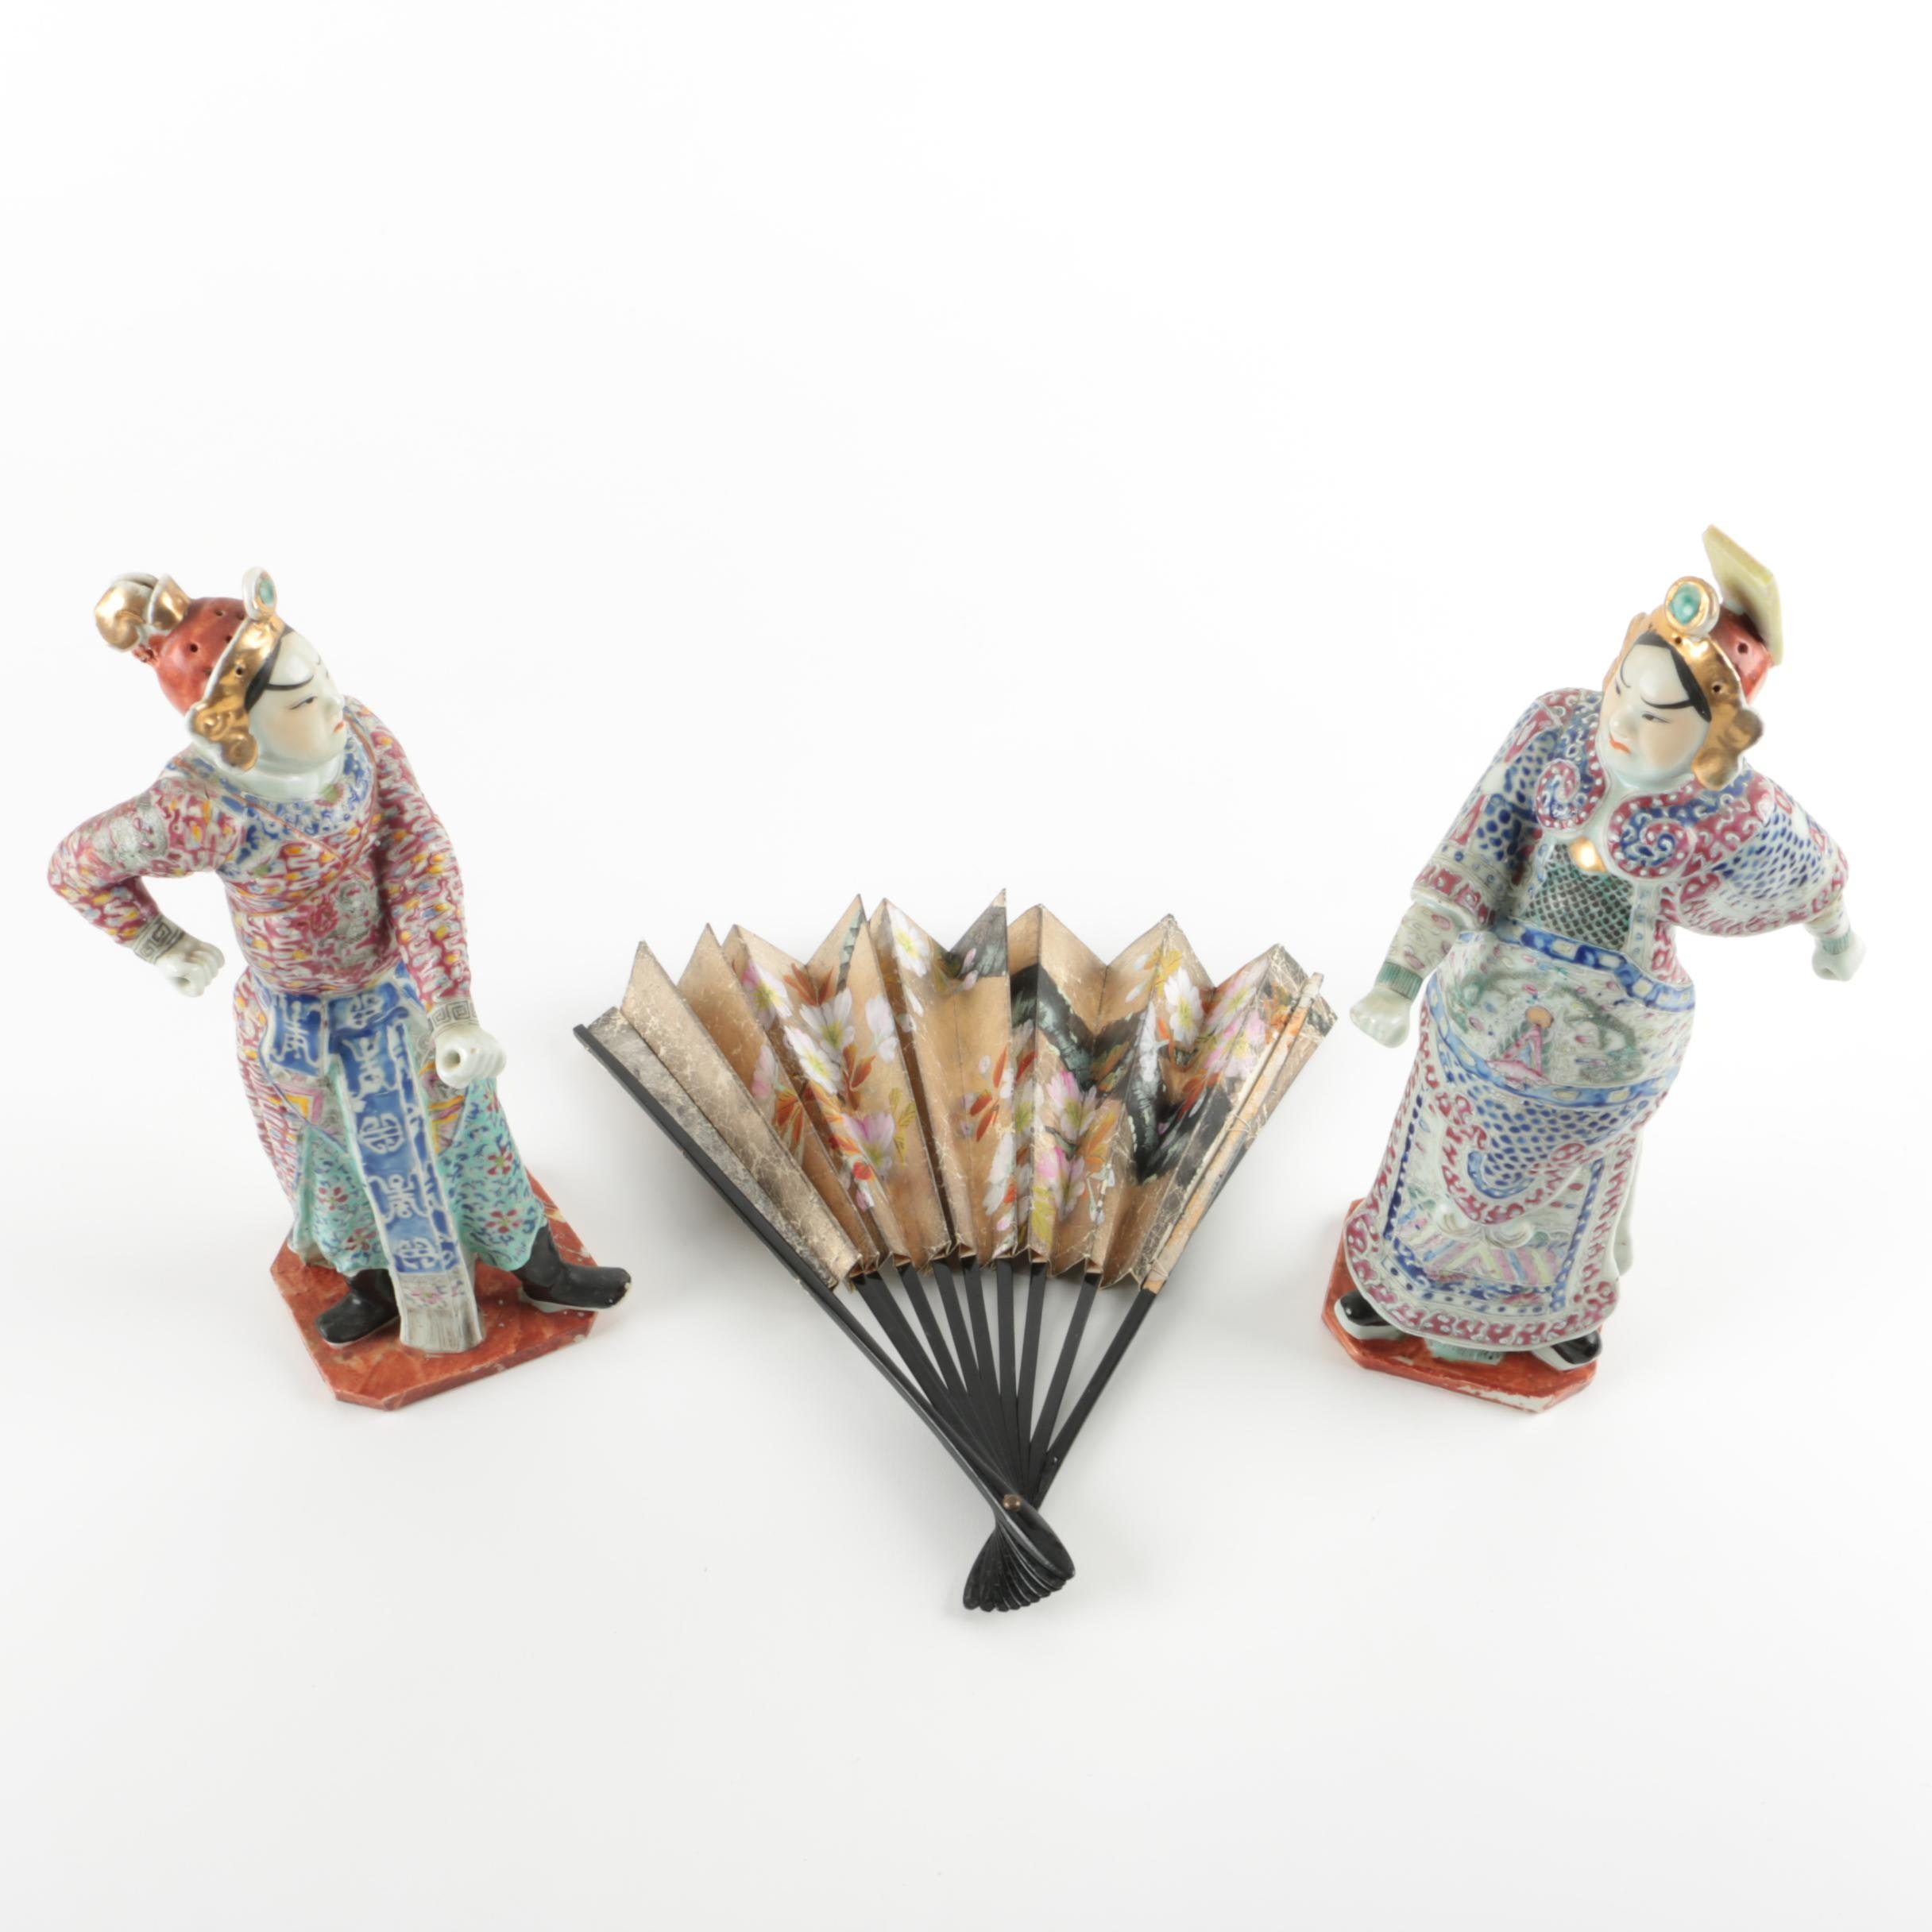 Ceramic Asian Figurines and Fan